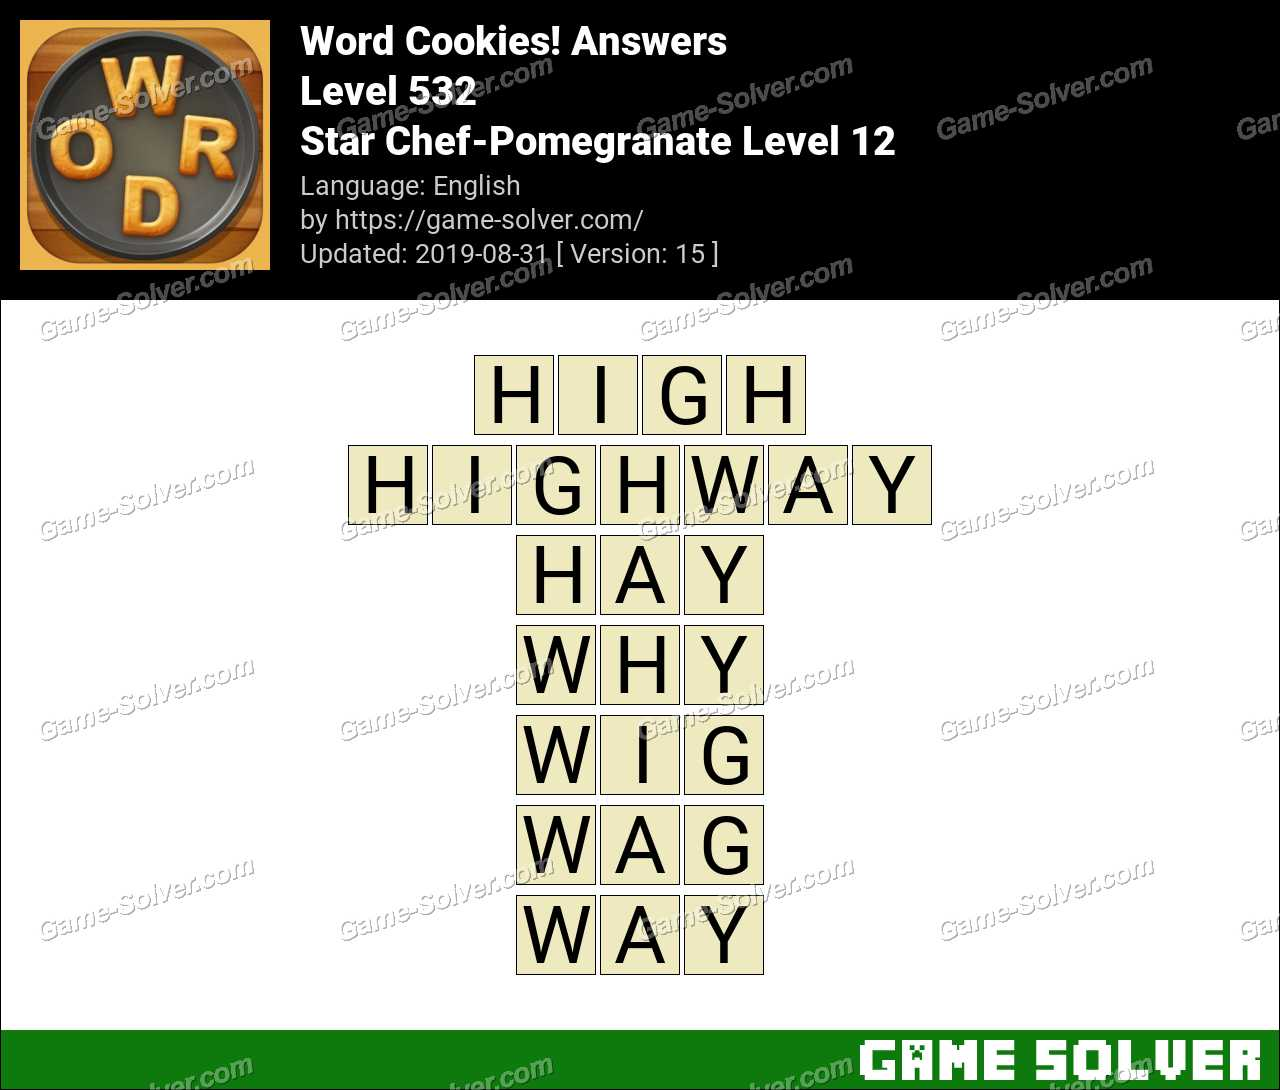 Word Cookies Star Chef-Pomegranate Level 12 Answers